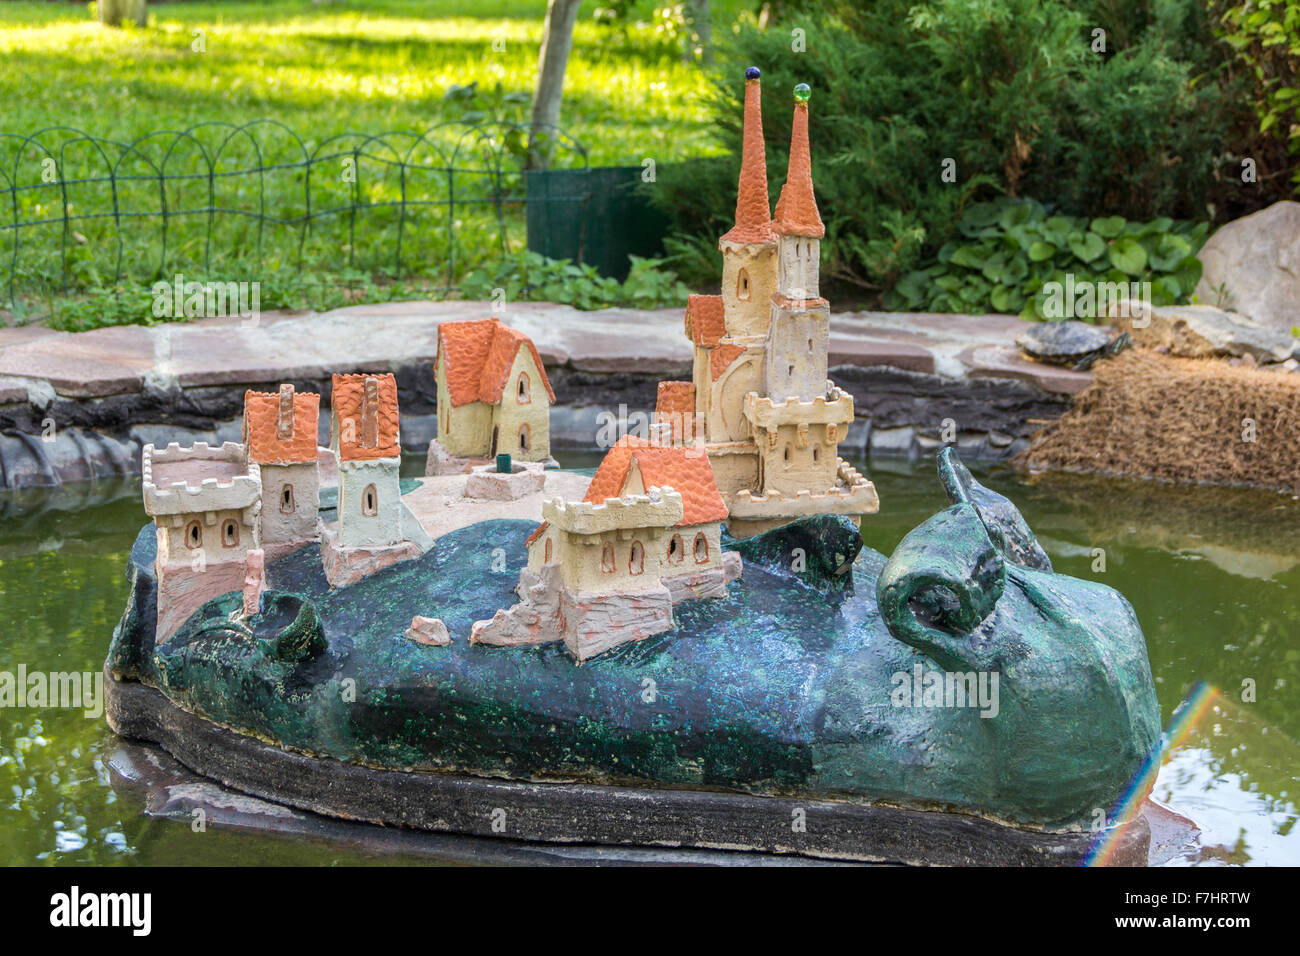 garden statue of a snail with castle on its back in a pond - Stock Image